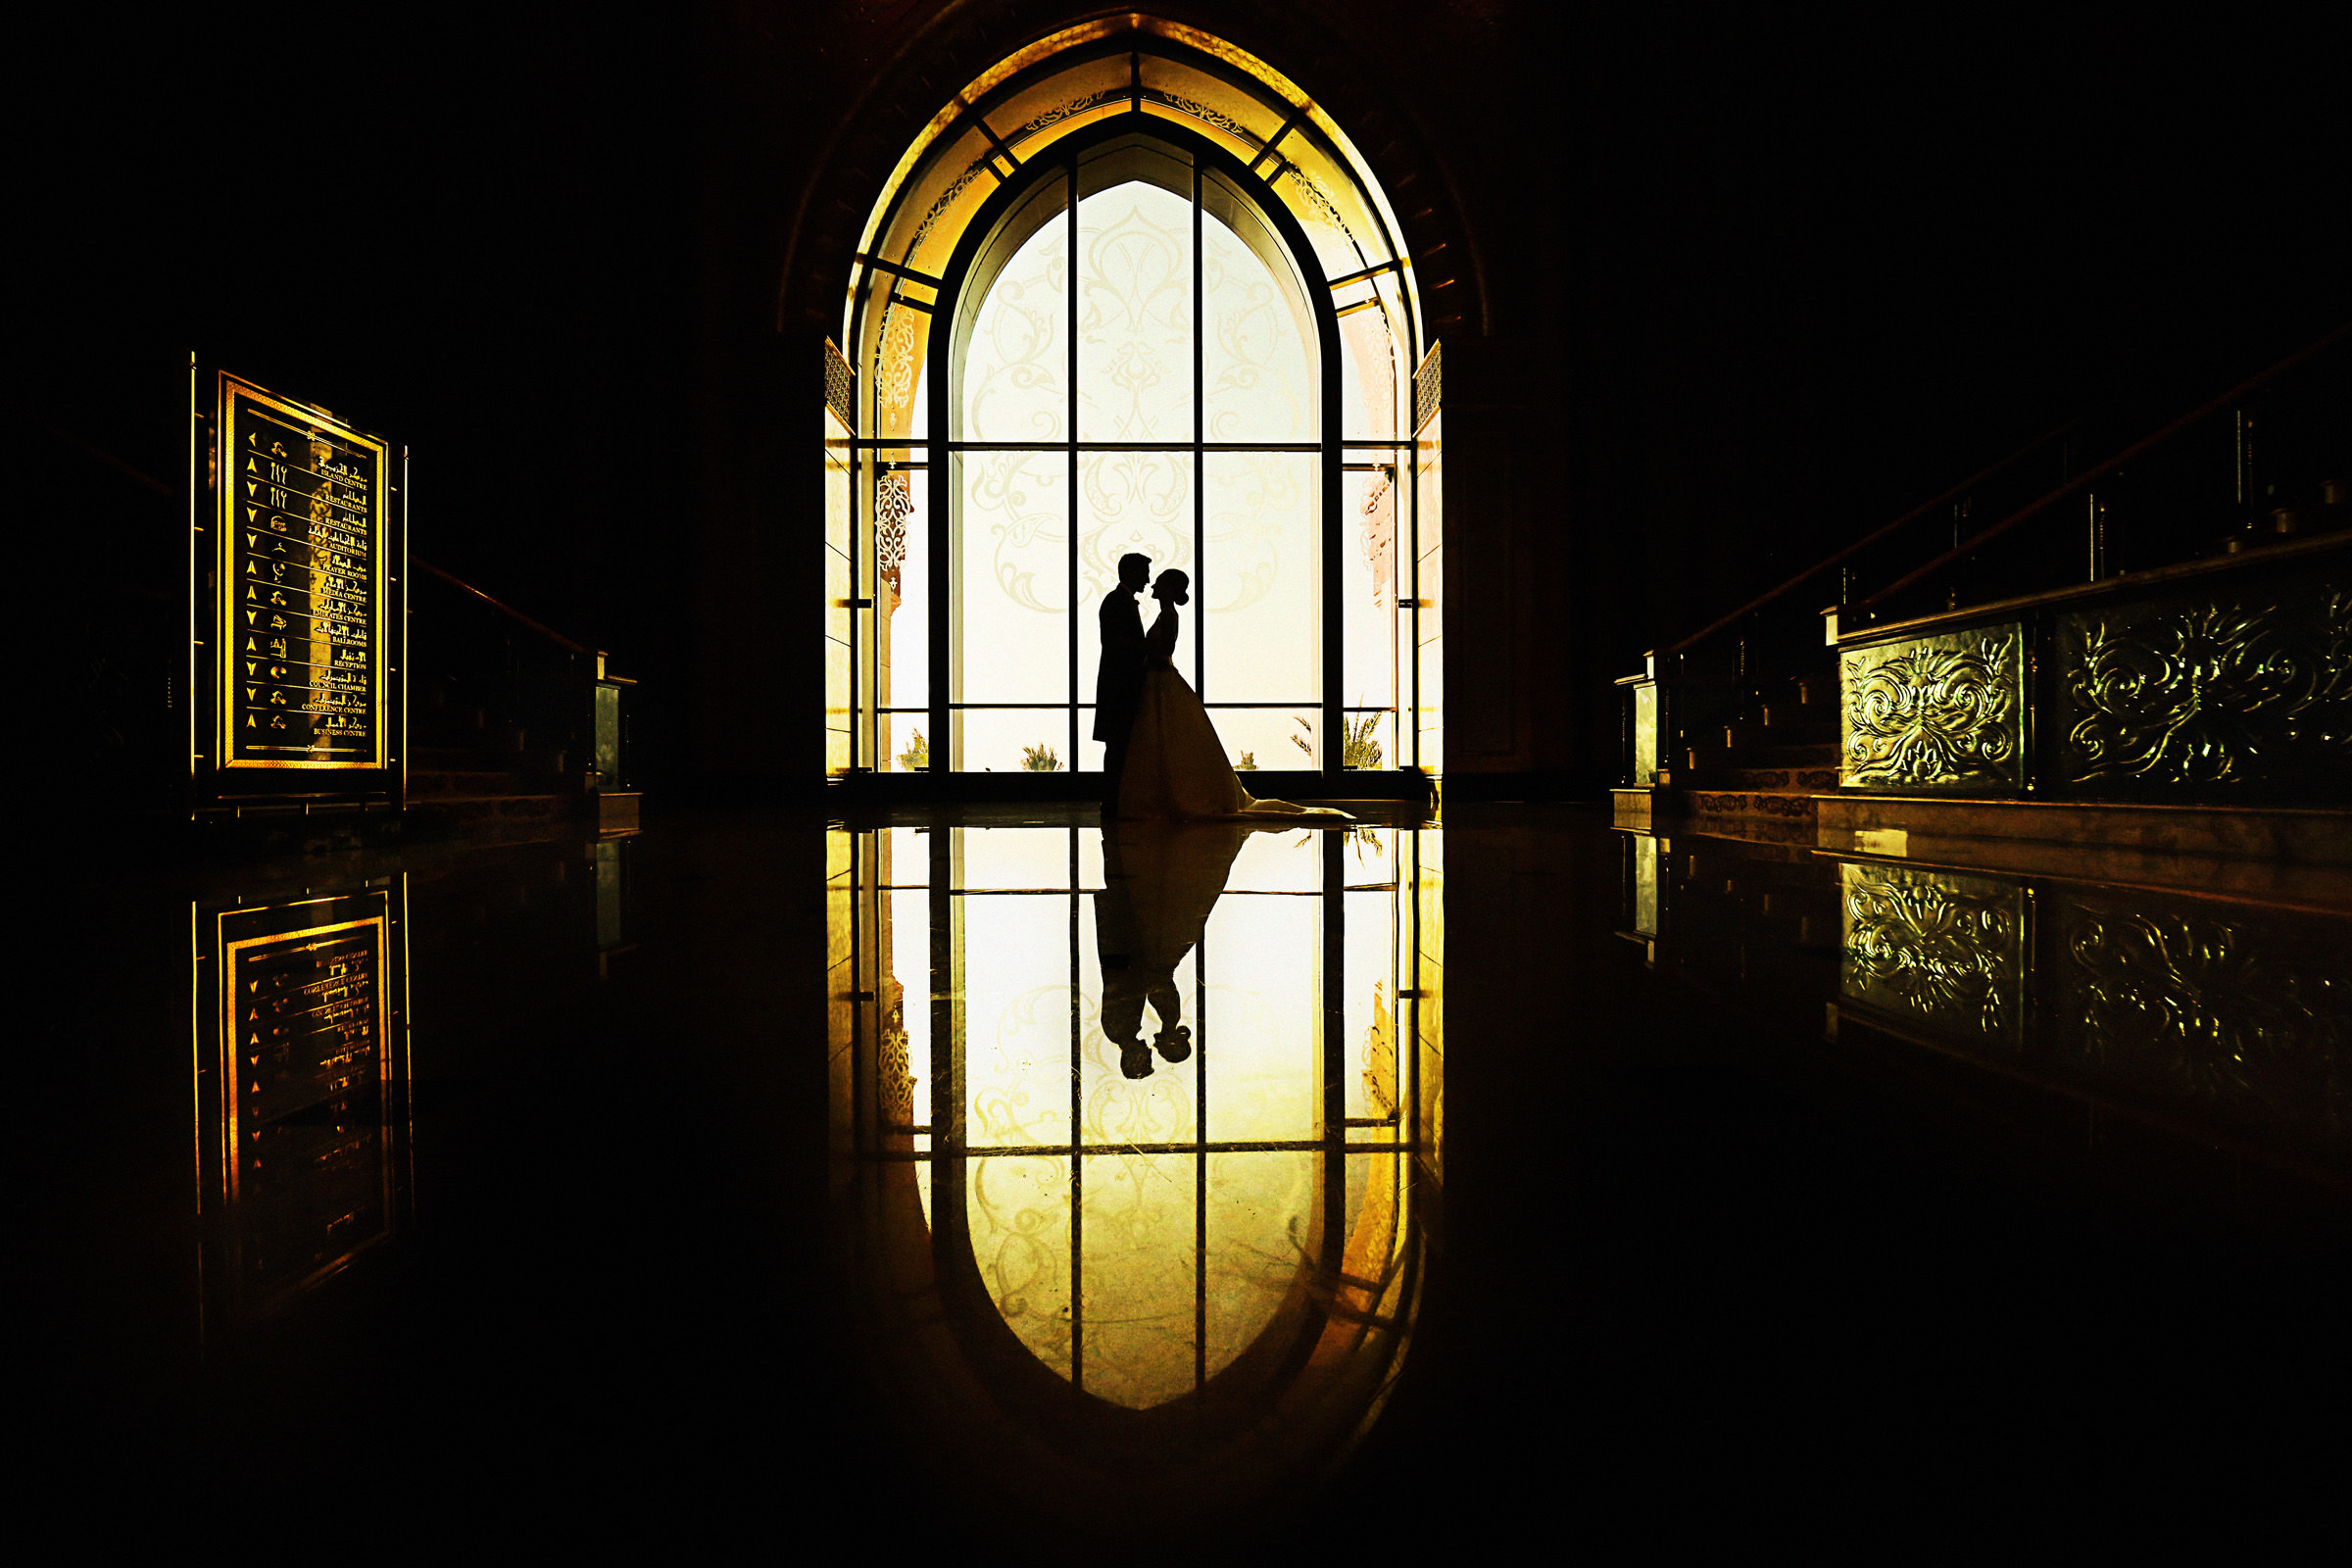 Silhouette with reflection framed within window, by Franck Boutonnet